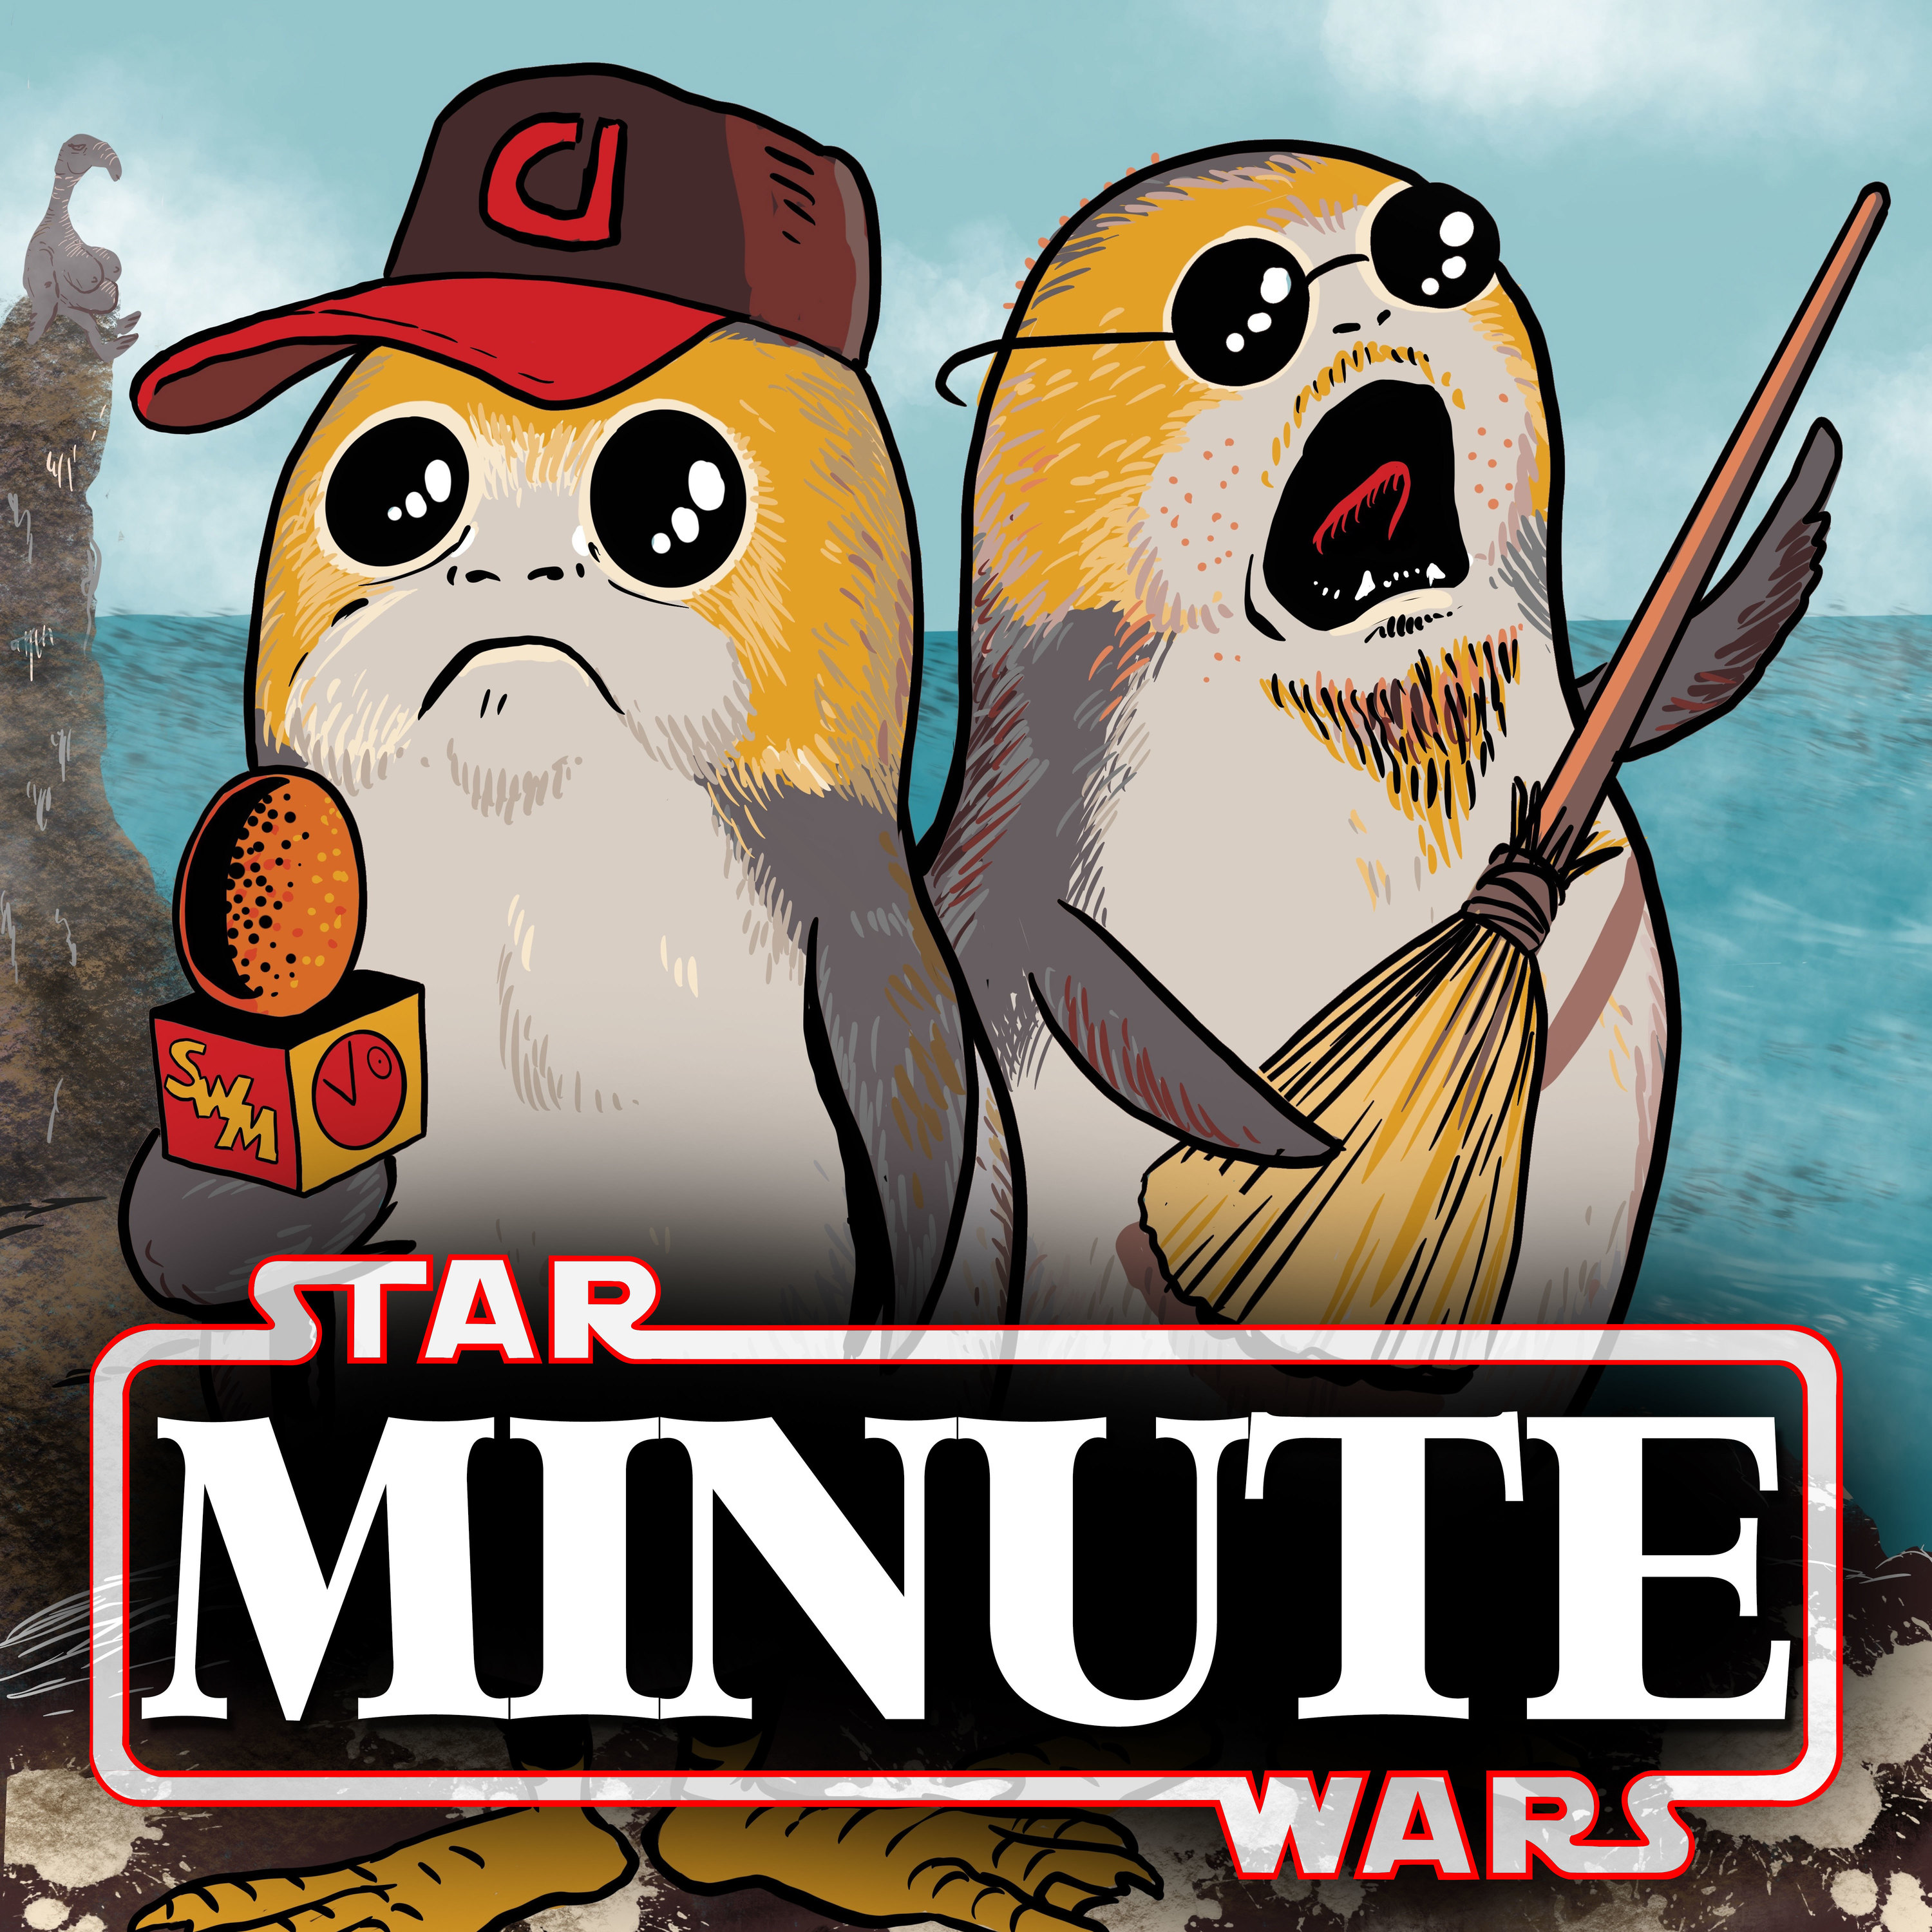 Star Wars Minute podcast show image